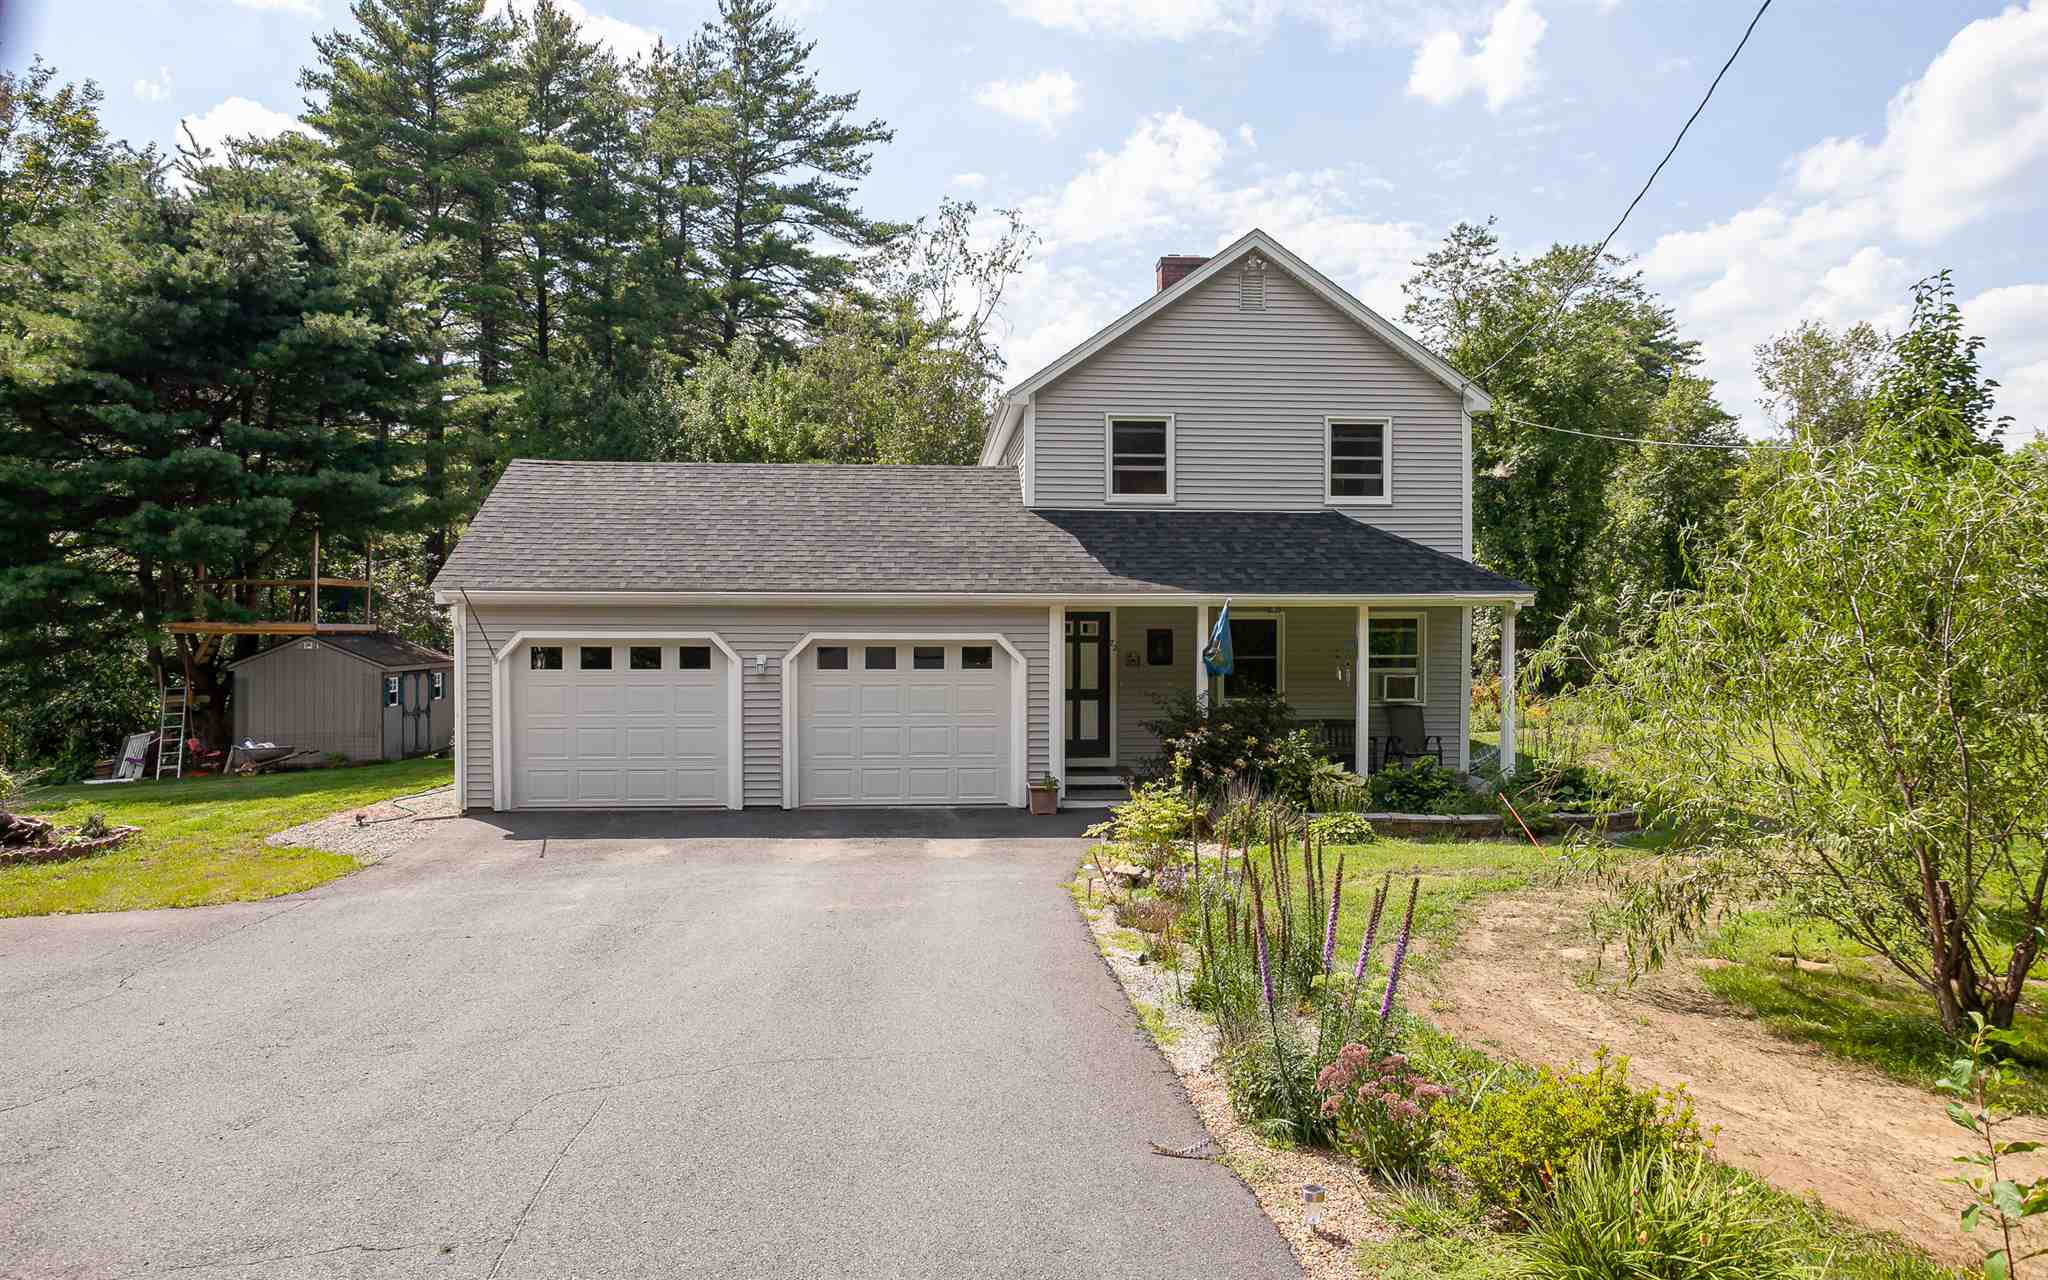 MLS 4822047: 72 Bookseller Road, Walpole NH